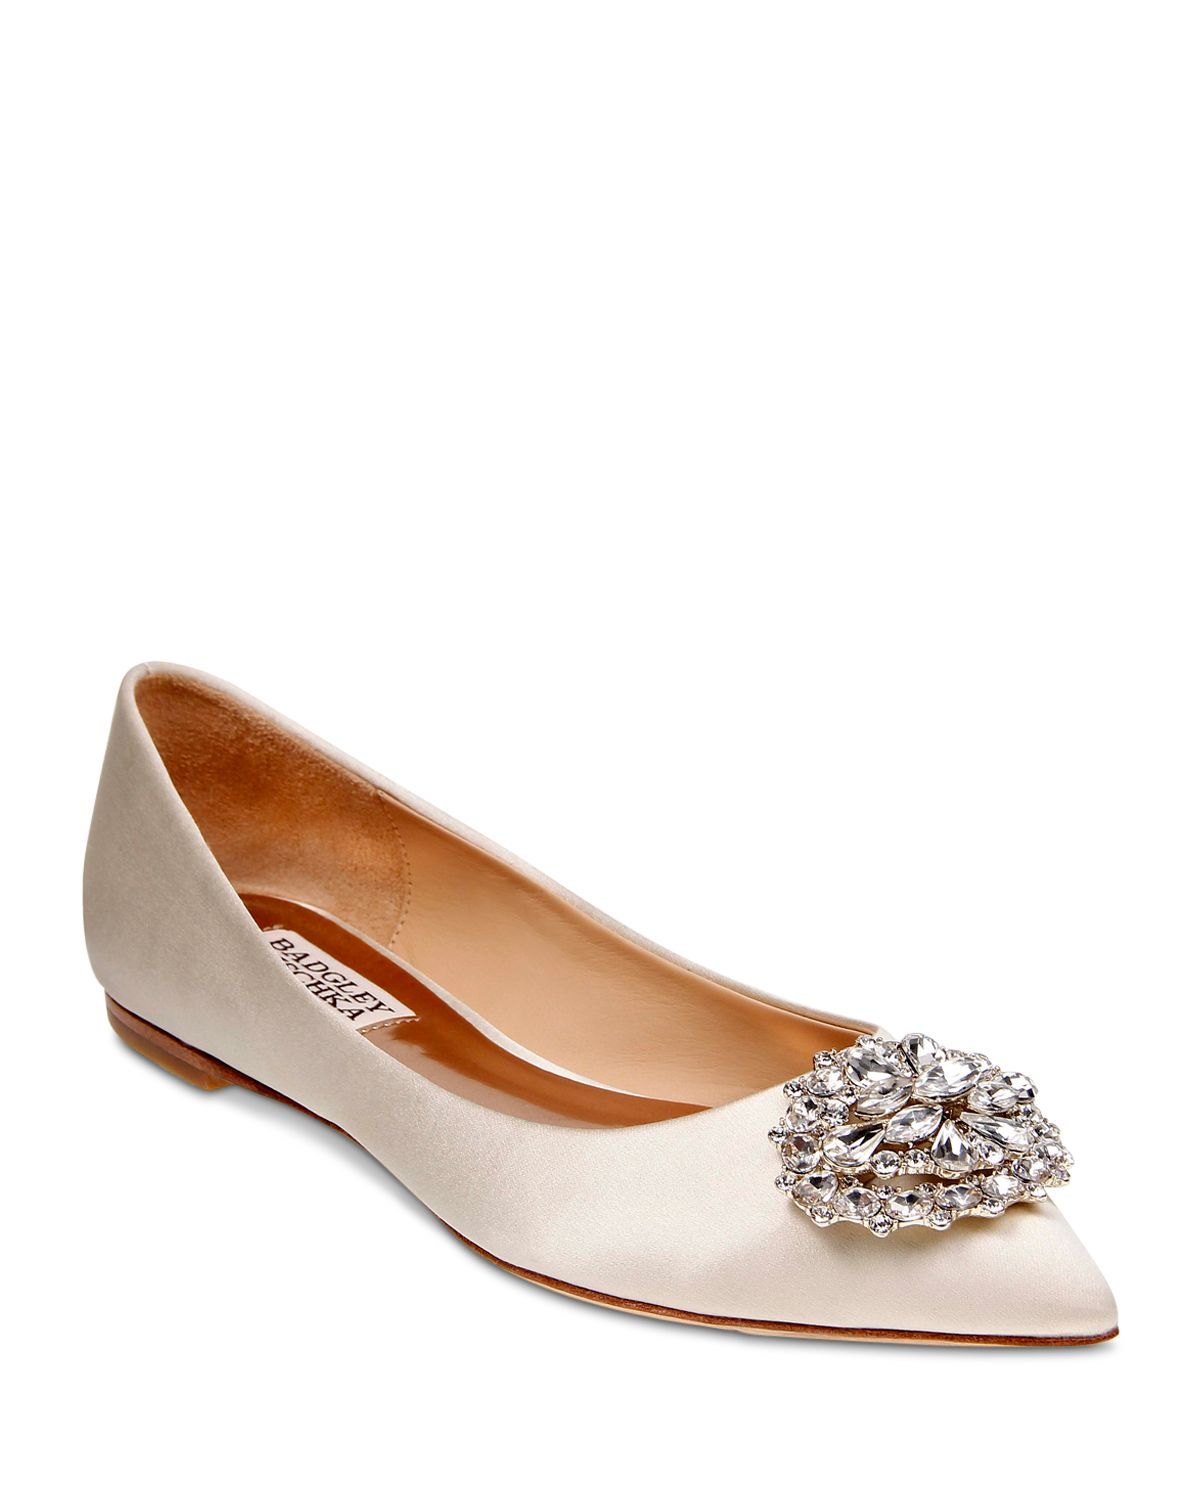 Badgley Mischka Embellished Satin Flats